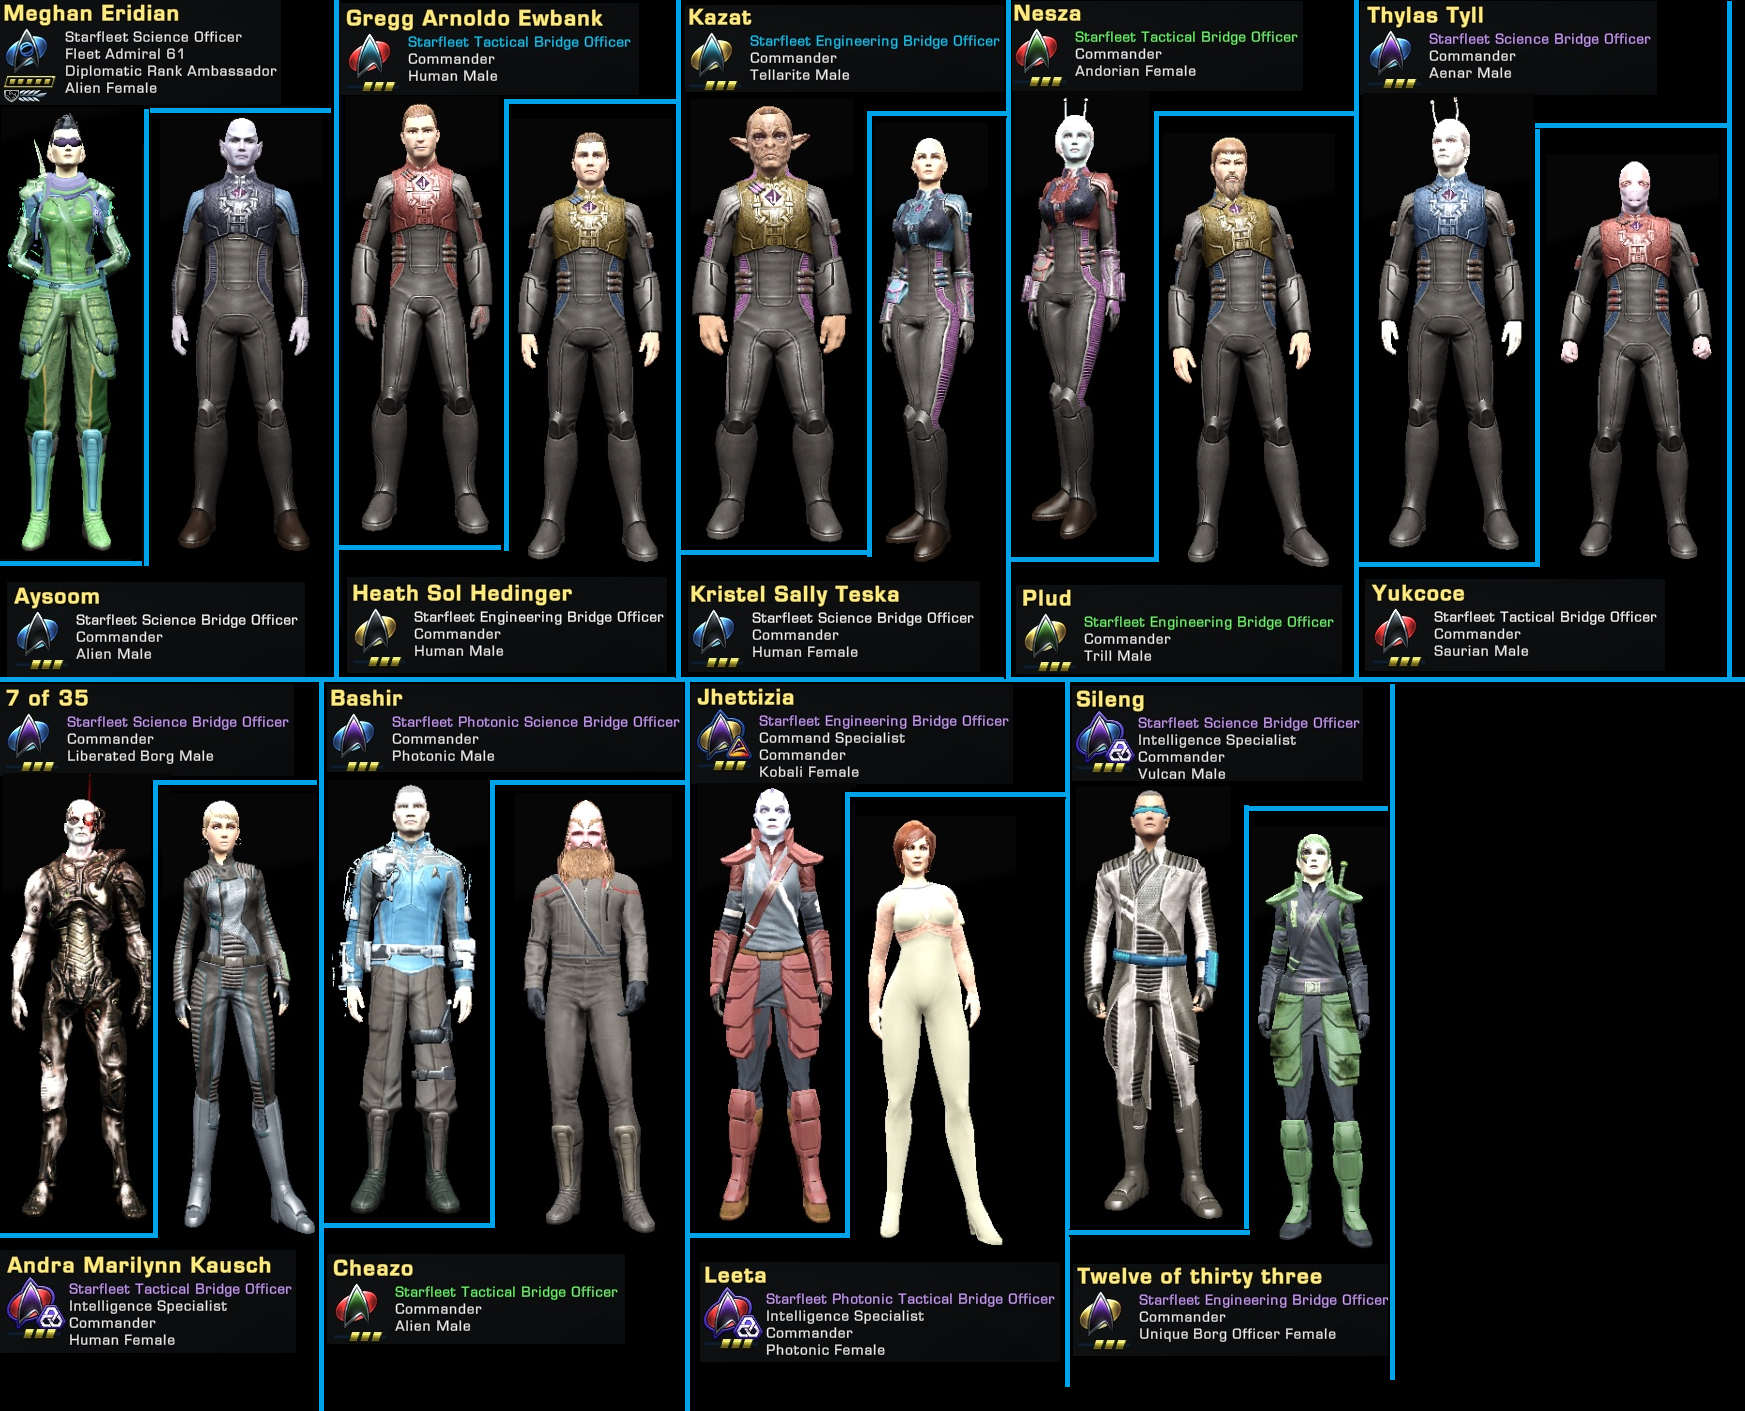 eridiancollection_by_marhawkman-dch07n8.png